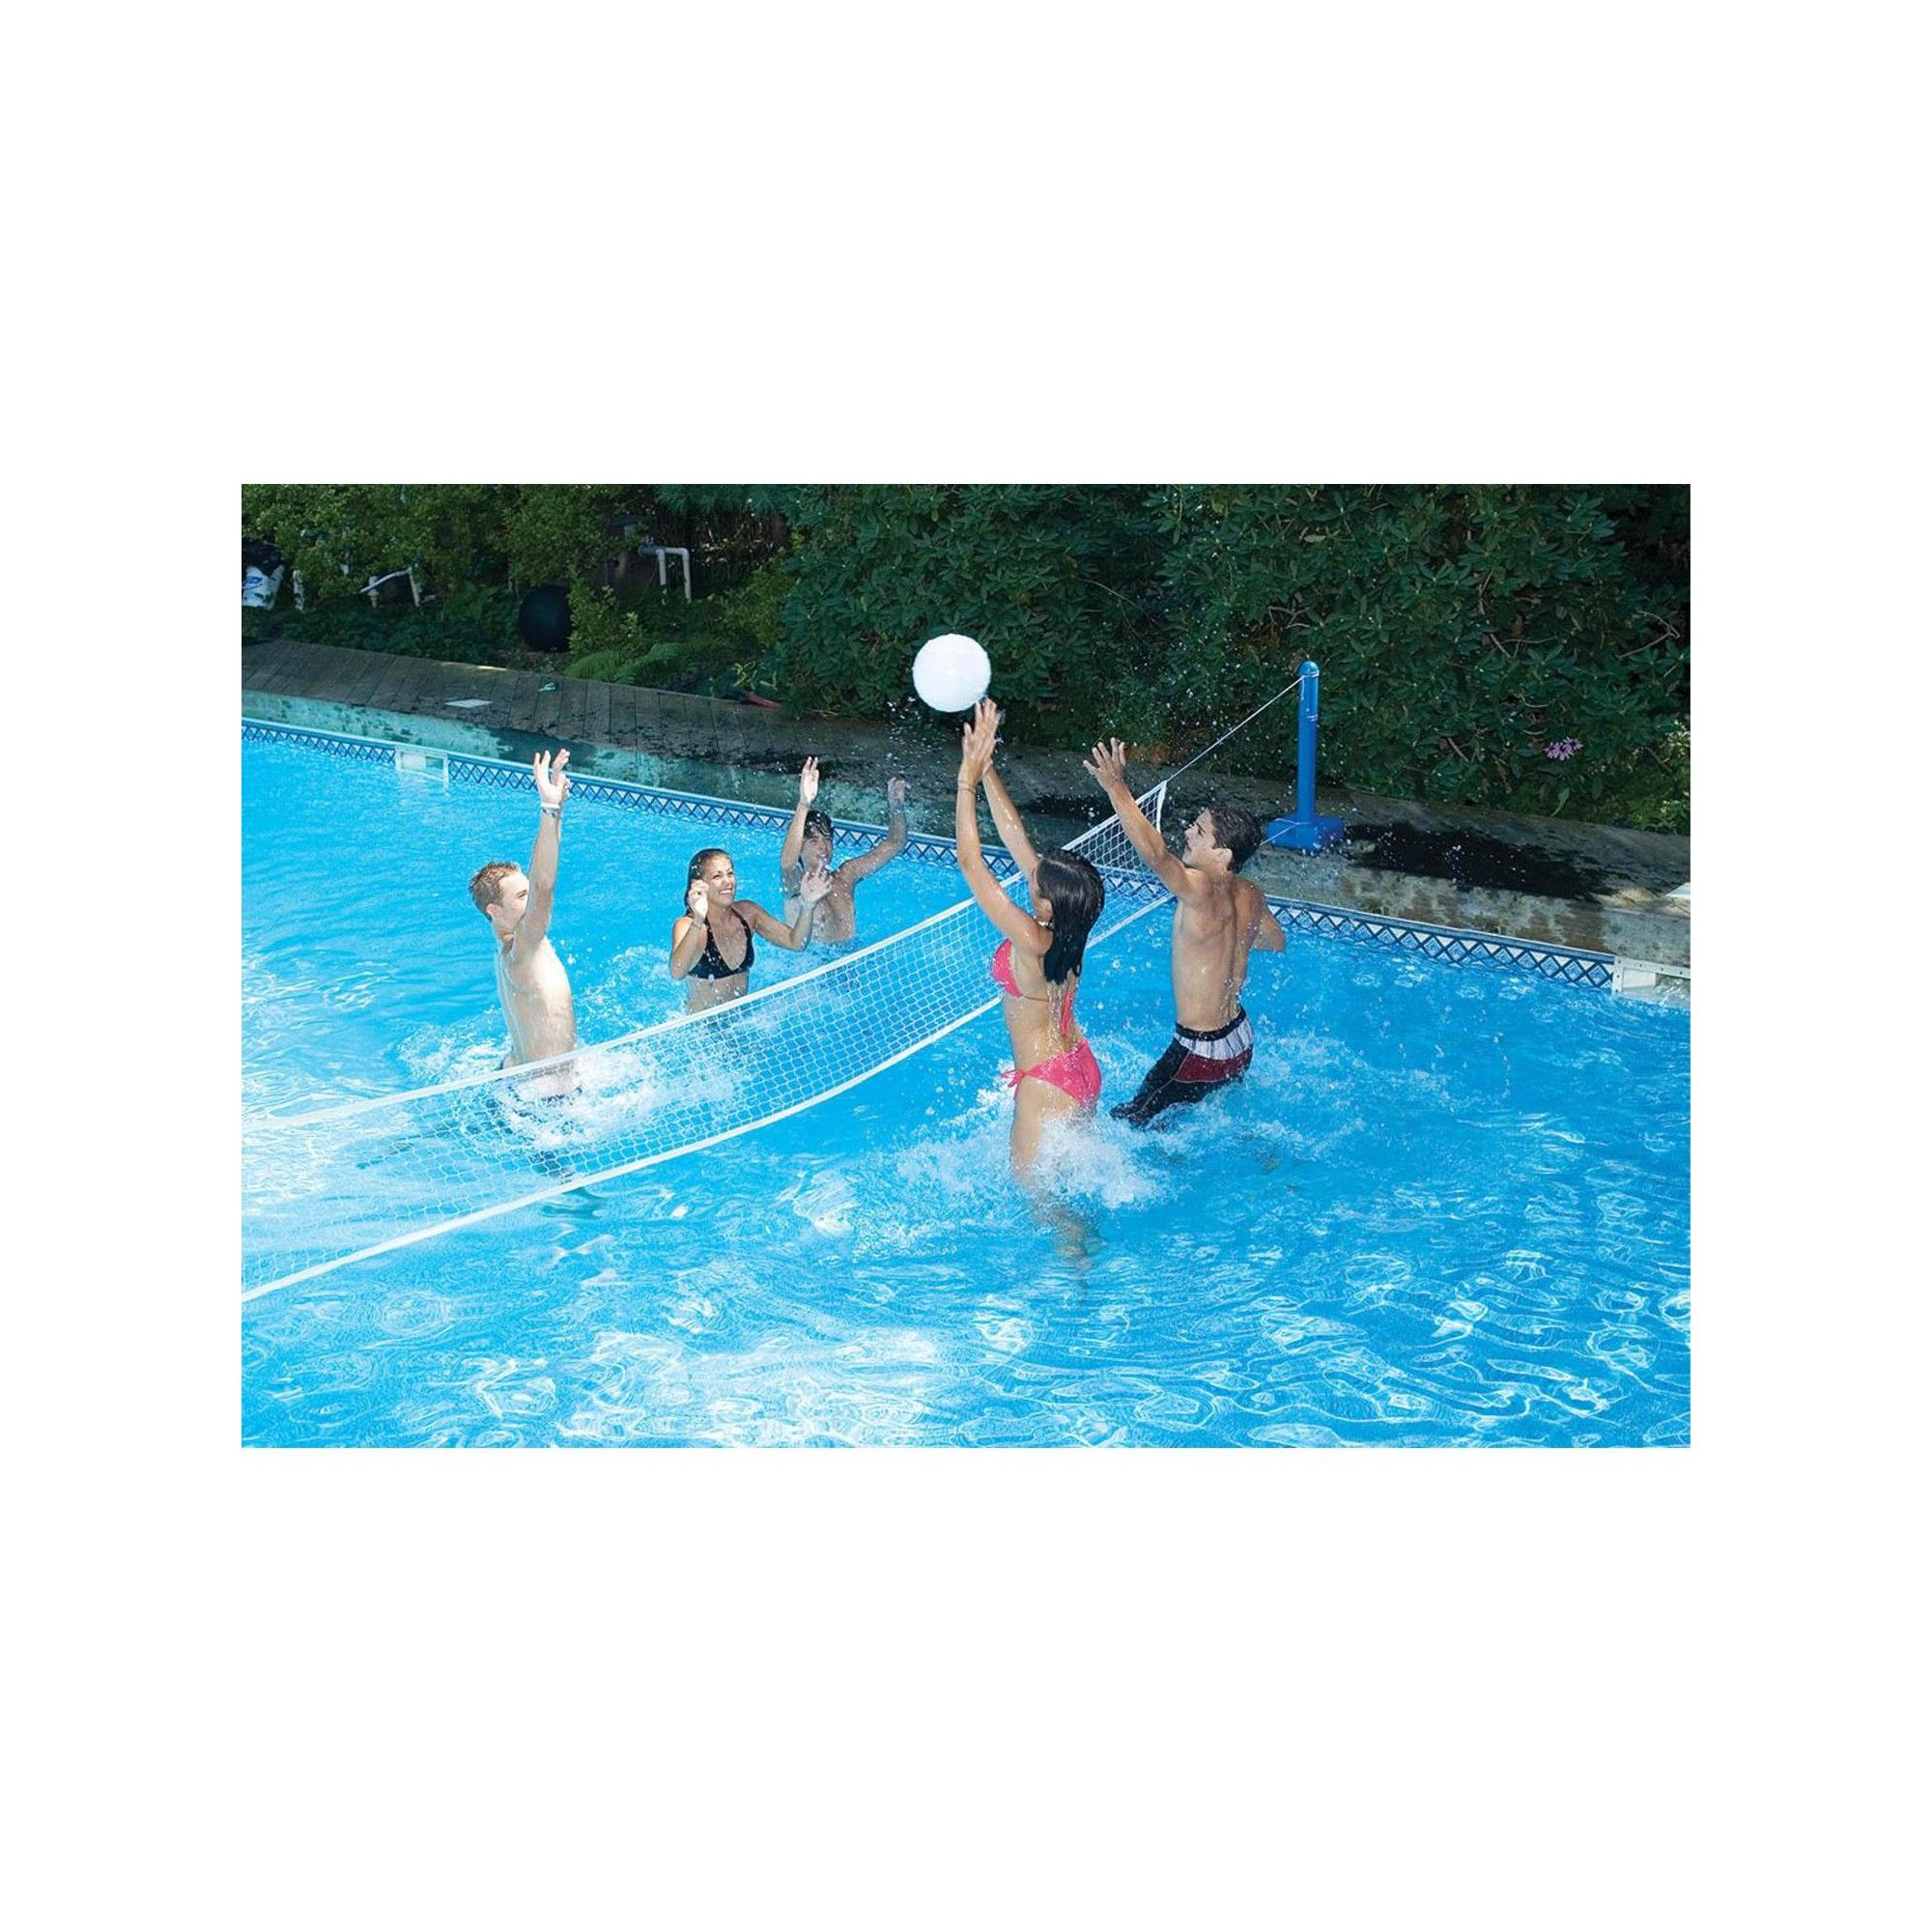 Swimline 20 Volleyball Weighted Net Support Swimming Pool Game White Blue In 2019 Products Swimming Pool Games Pool Games Swimming Pools